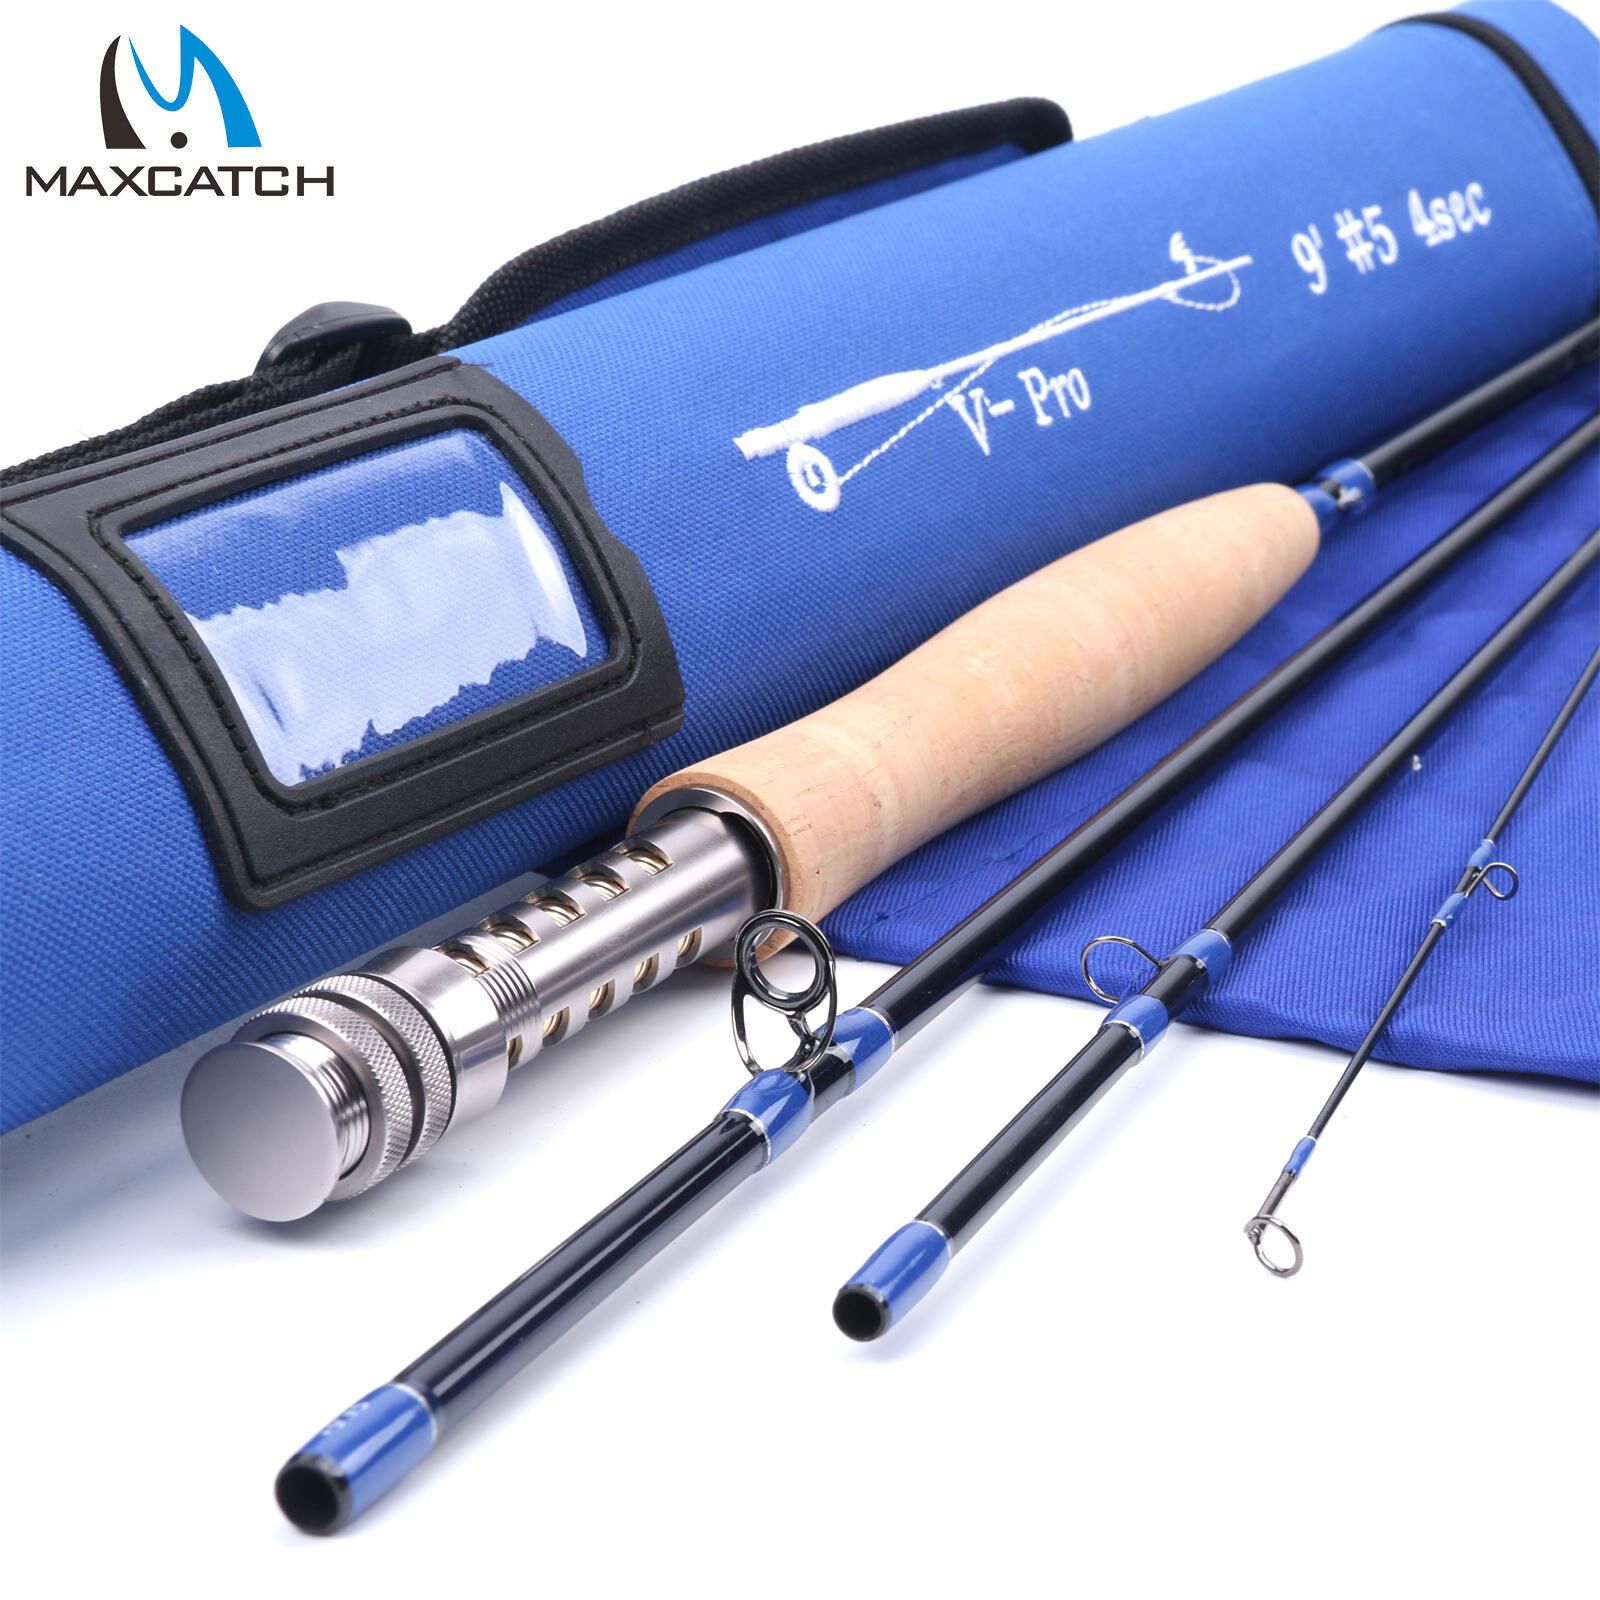 Maxcatch Pro Fly Rod 4/5/6/8wt 9ft Fast Action IM10 IM10 IM10 Carbon Fly Fishing Rod 5695f6